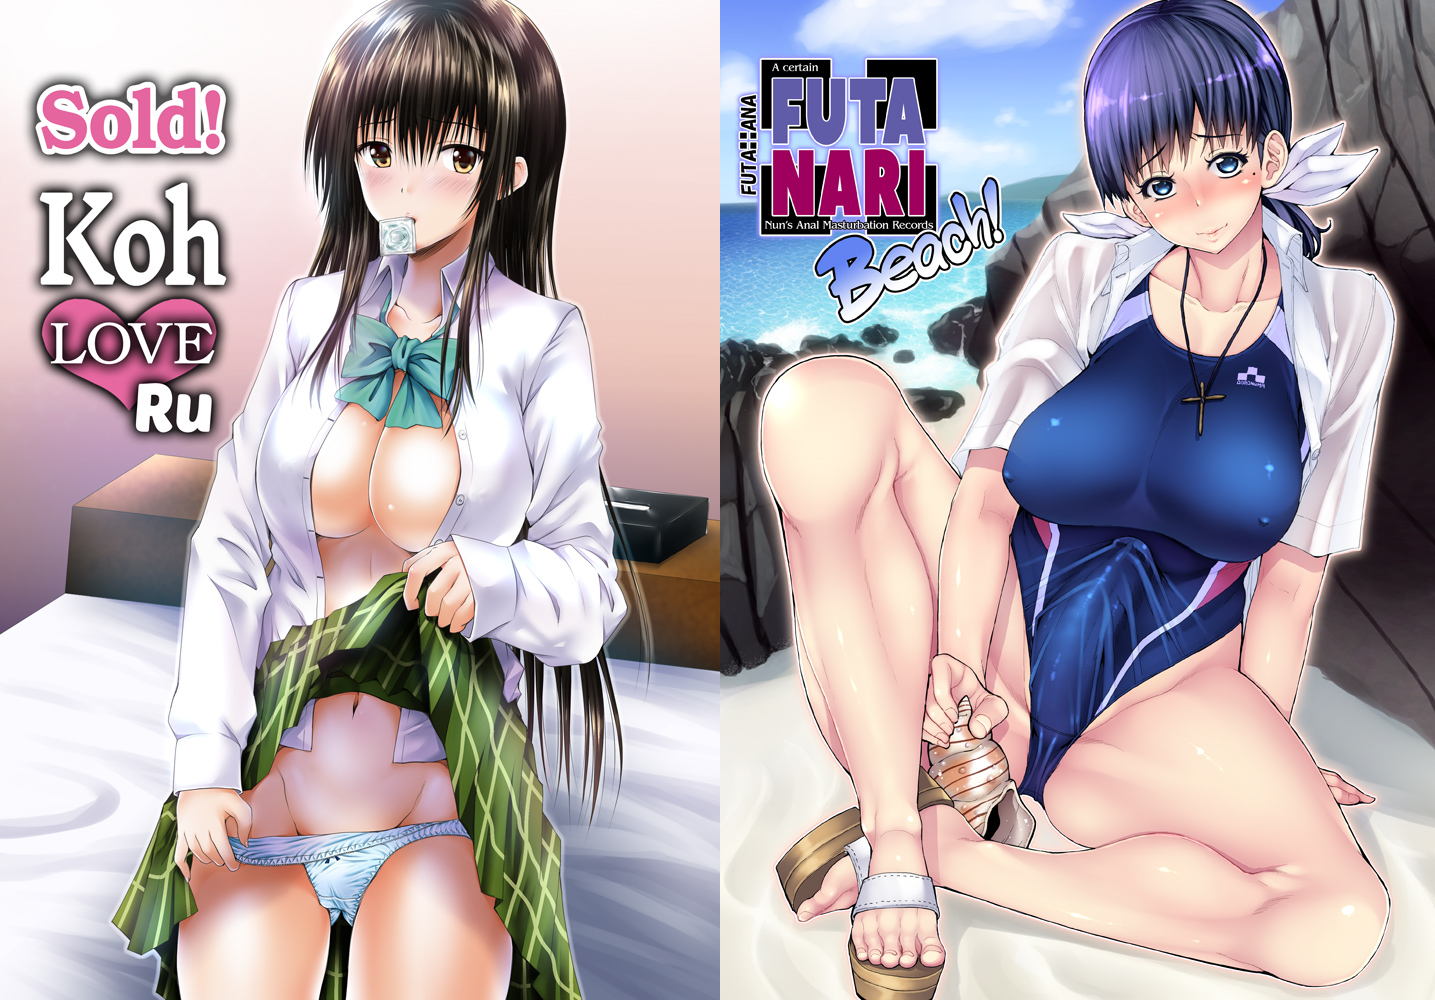 Sold Koh LOVE-Ru and FutaAna 3 covers